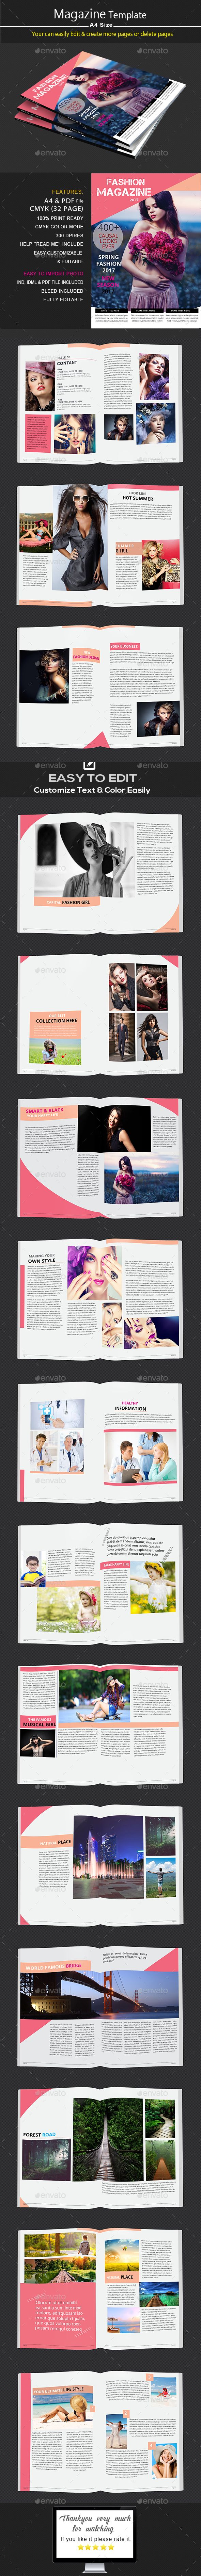 32 Page InDesign Magazine A4